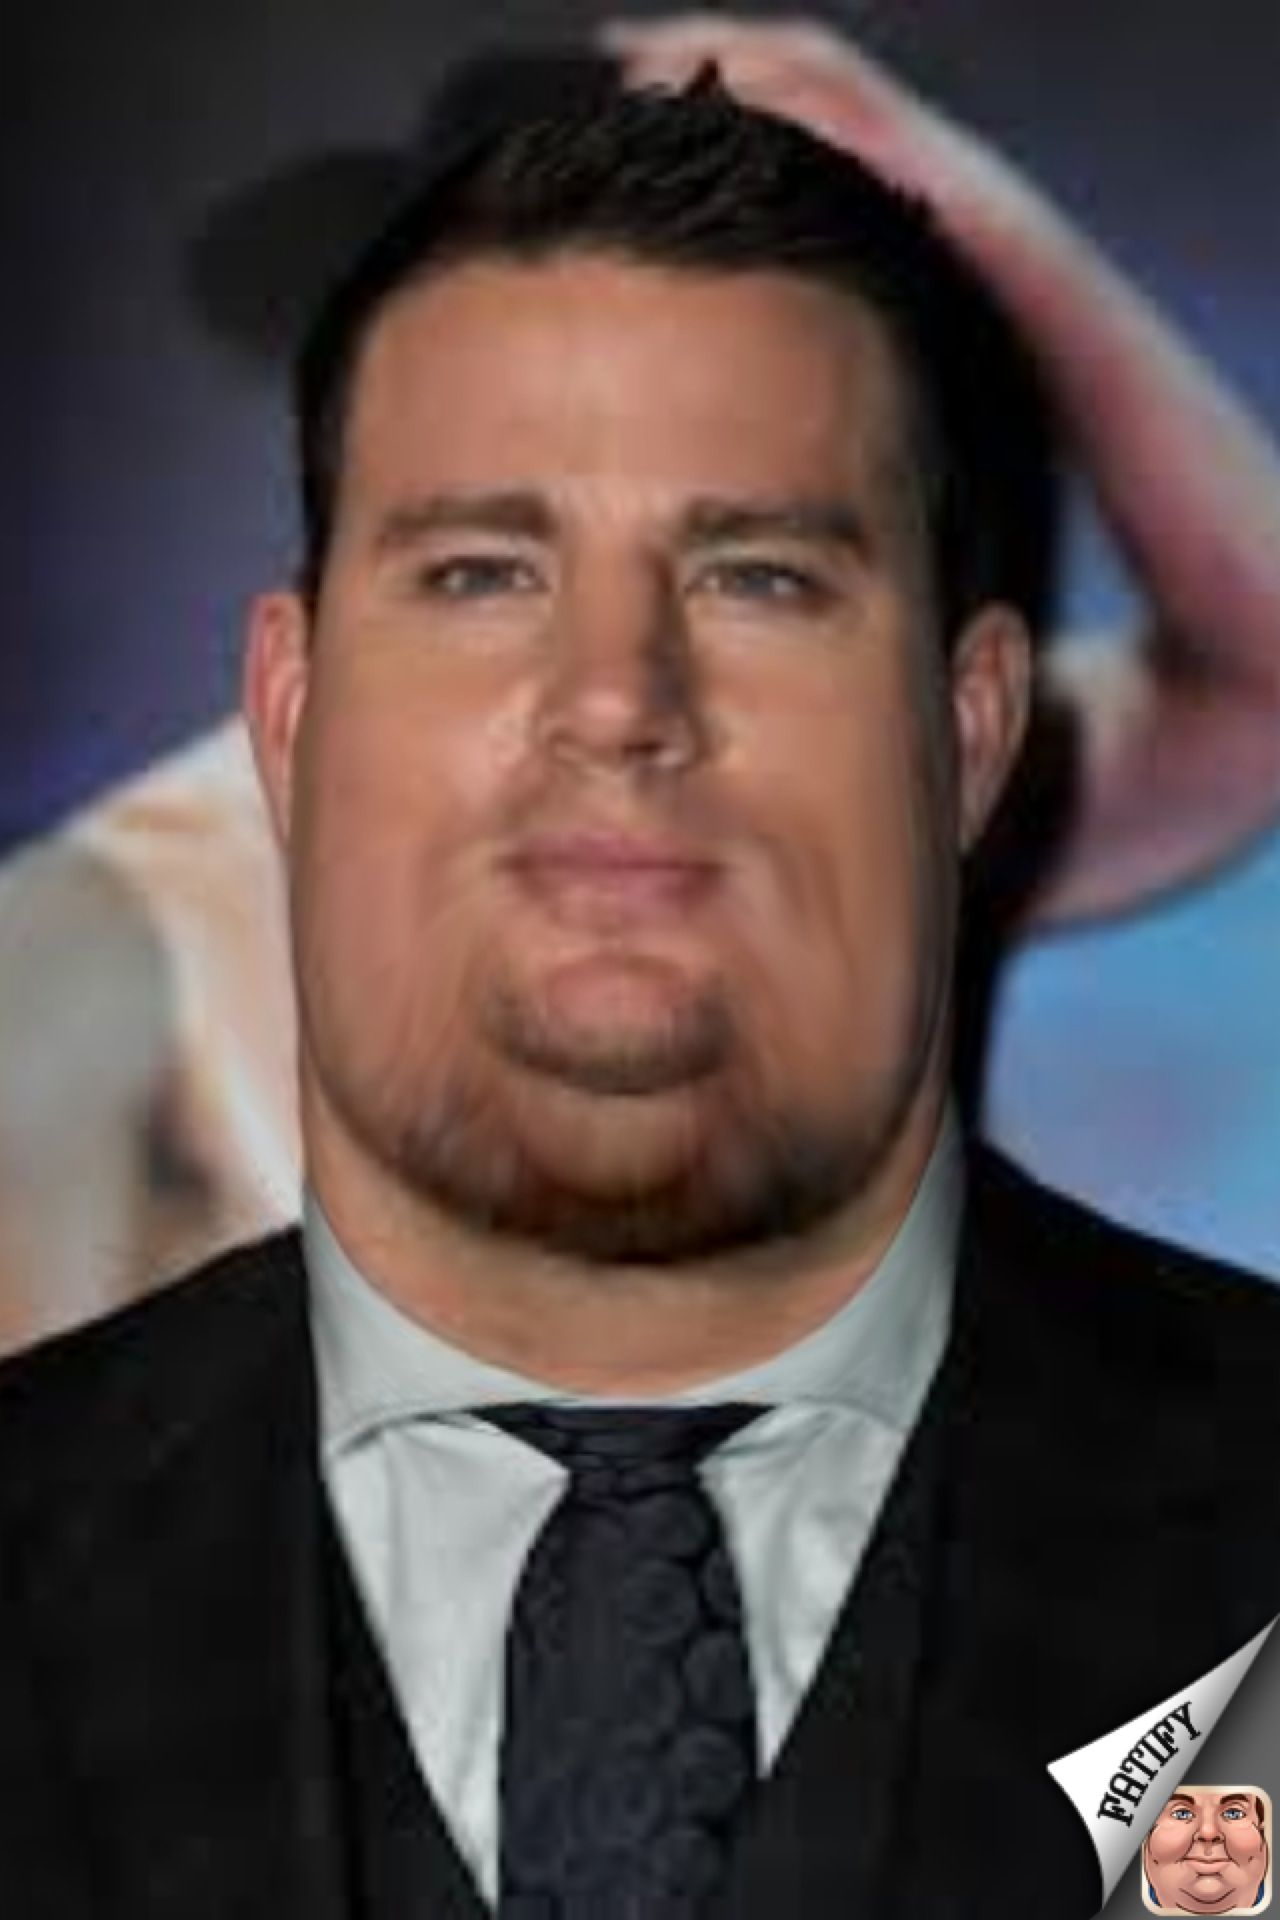 Channing Potatum Is Not Attractive Fat Skinny Muscley